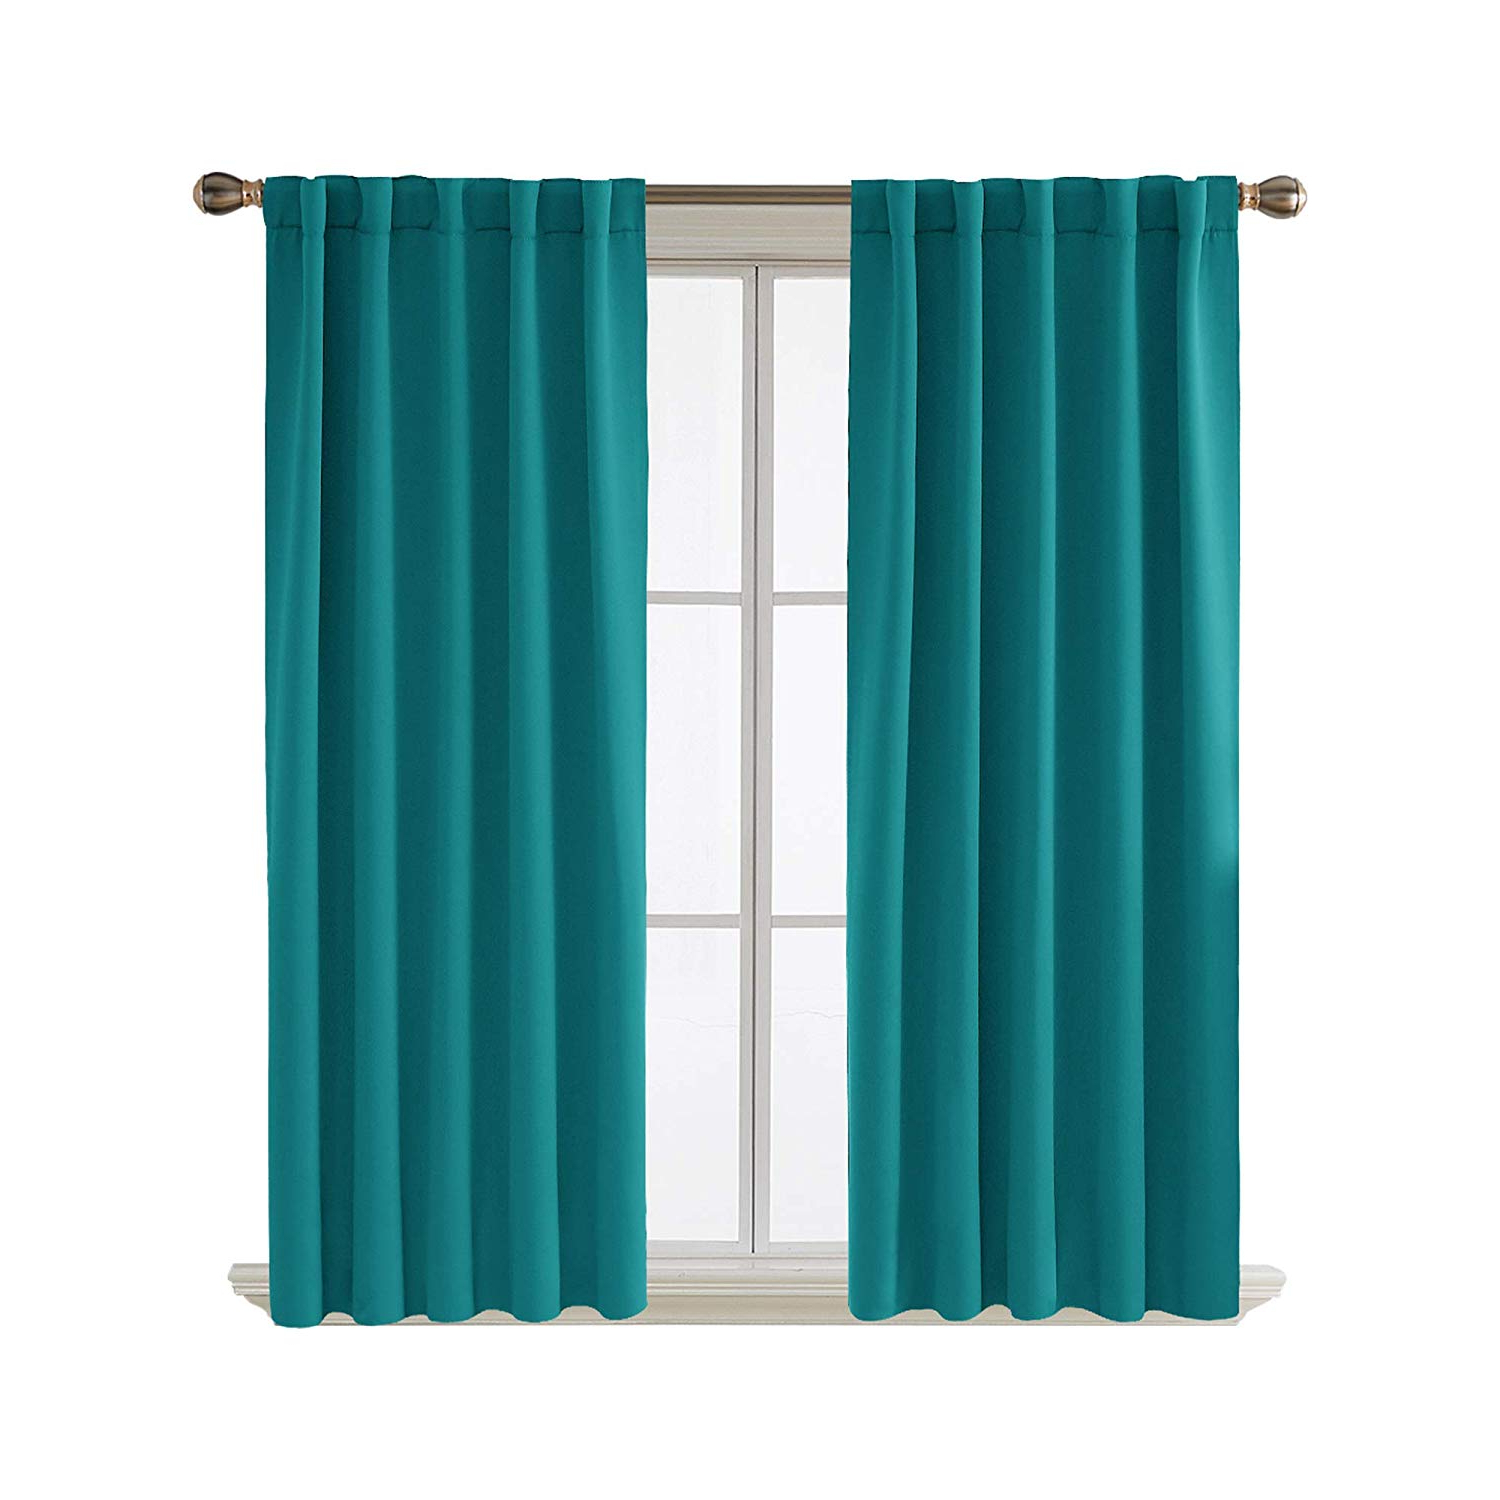 Widely Used Deconovo Short Blackout Curtains For Kitchen Windows Rod Pocket And Back Tab Curtains 42x45 Inch Turquoise 2 Panels In Ultimate Blackout Short Length Grommet Panels (View 11 of 20)